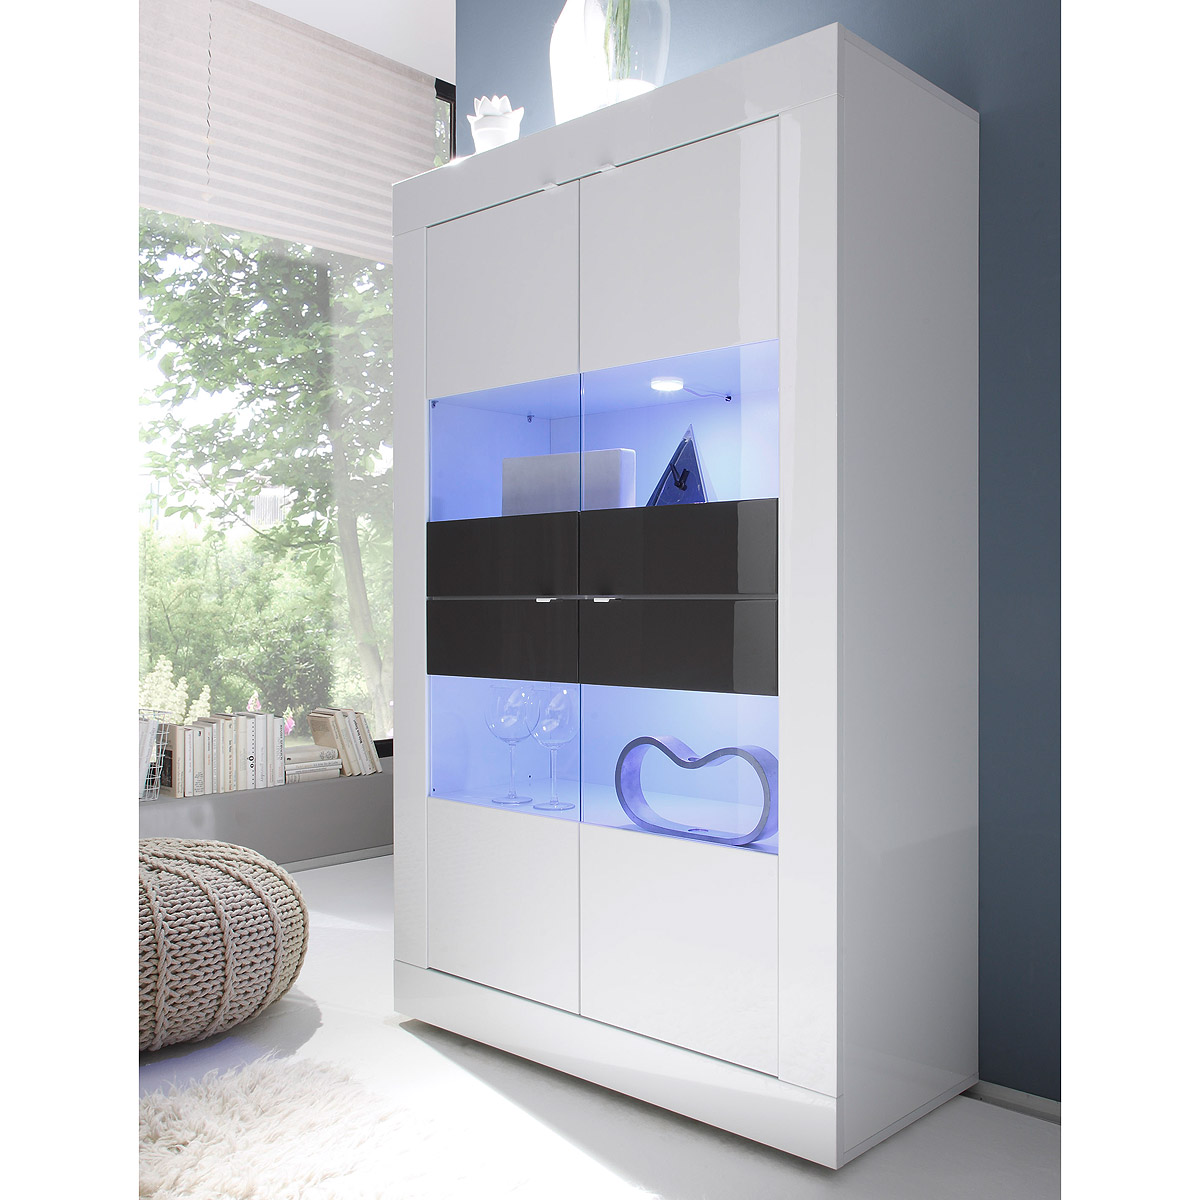 vitrine basic schrank wohnzimmer breit wei und anthrazit lackiert ebay. Black Bedroom Furniture Sets. Home Design Ideas